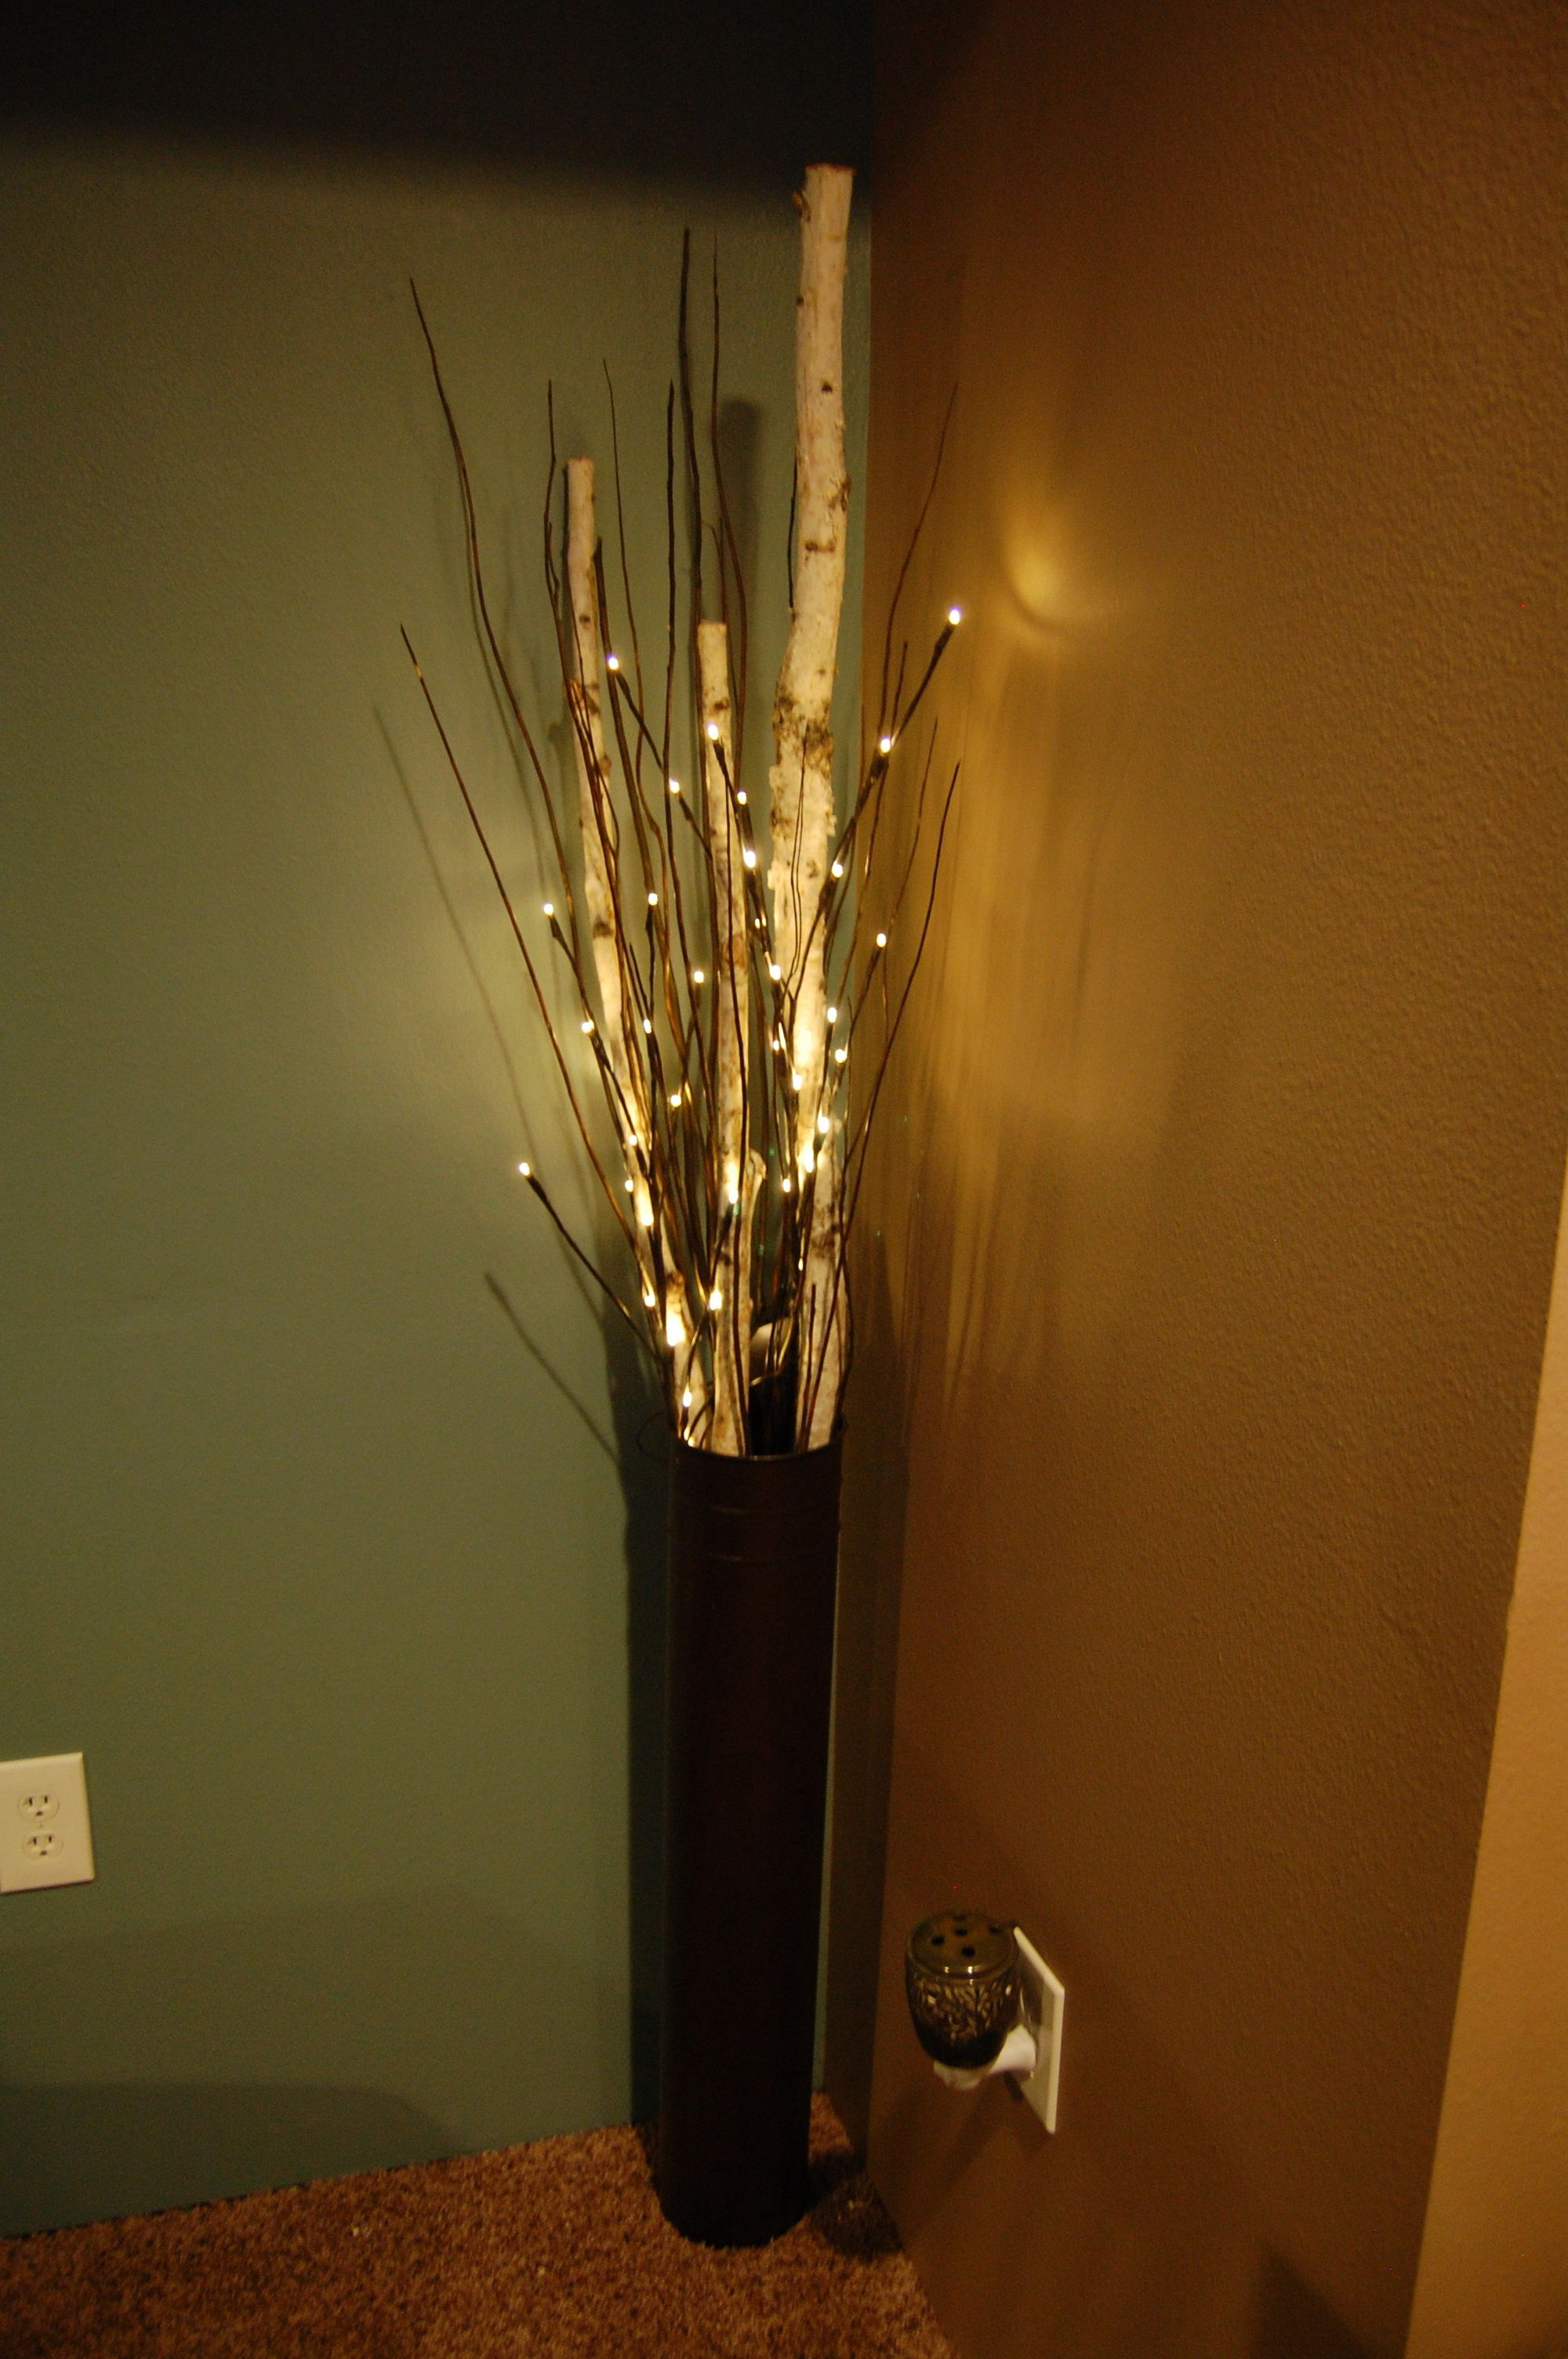 New Project With Birch Timed Branch Lights And Branches Floor Vase Decor Birch Tree Decor Vases Decor